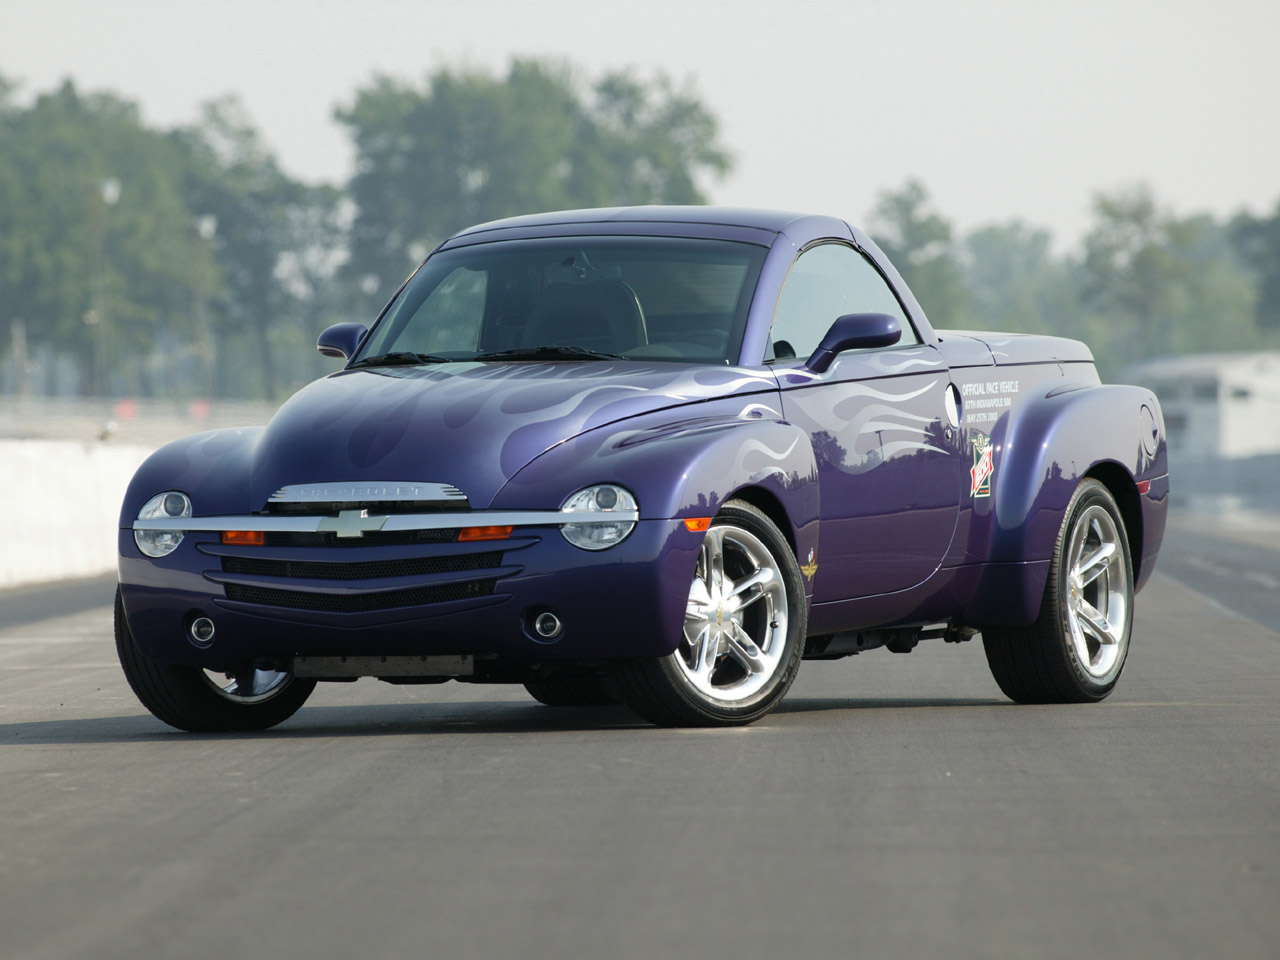 2003 Chevrolet Ssr Photos Informations Articles 125 Wiring Diagram Get Free Image About 14